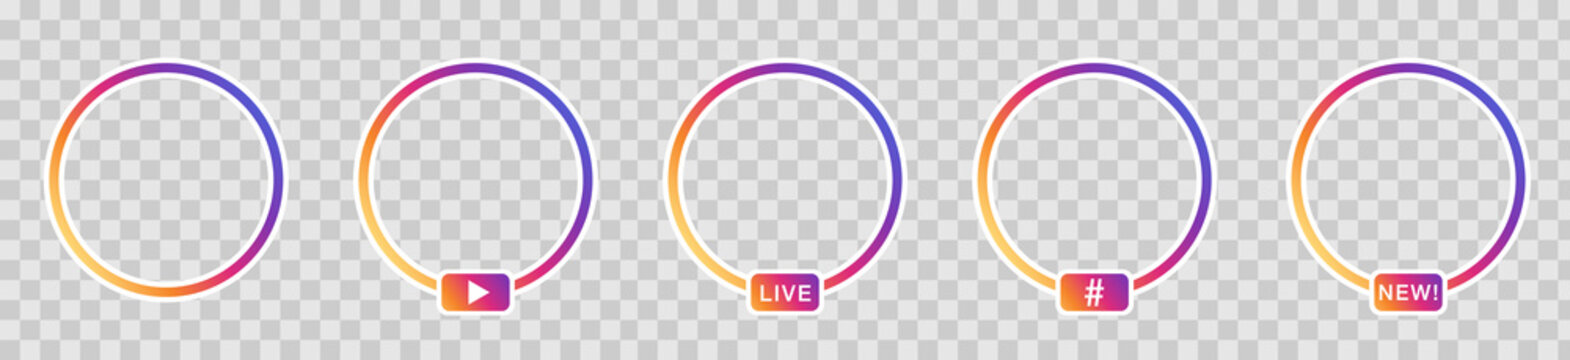 Social media style live icons, transparent background. Vector.